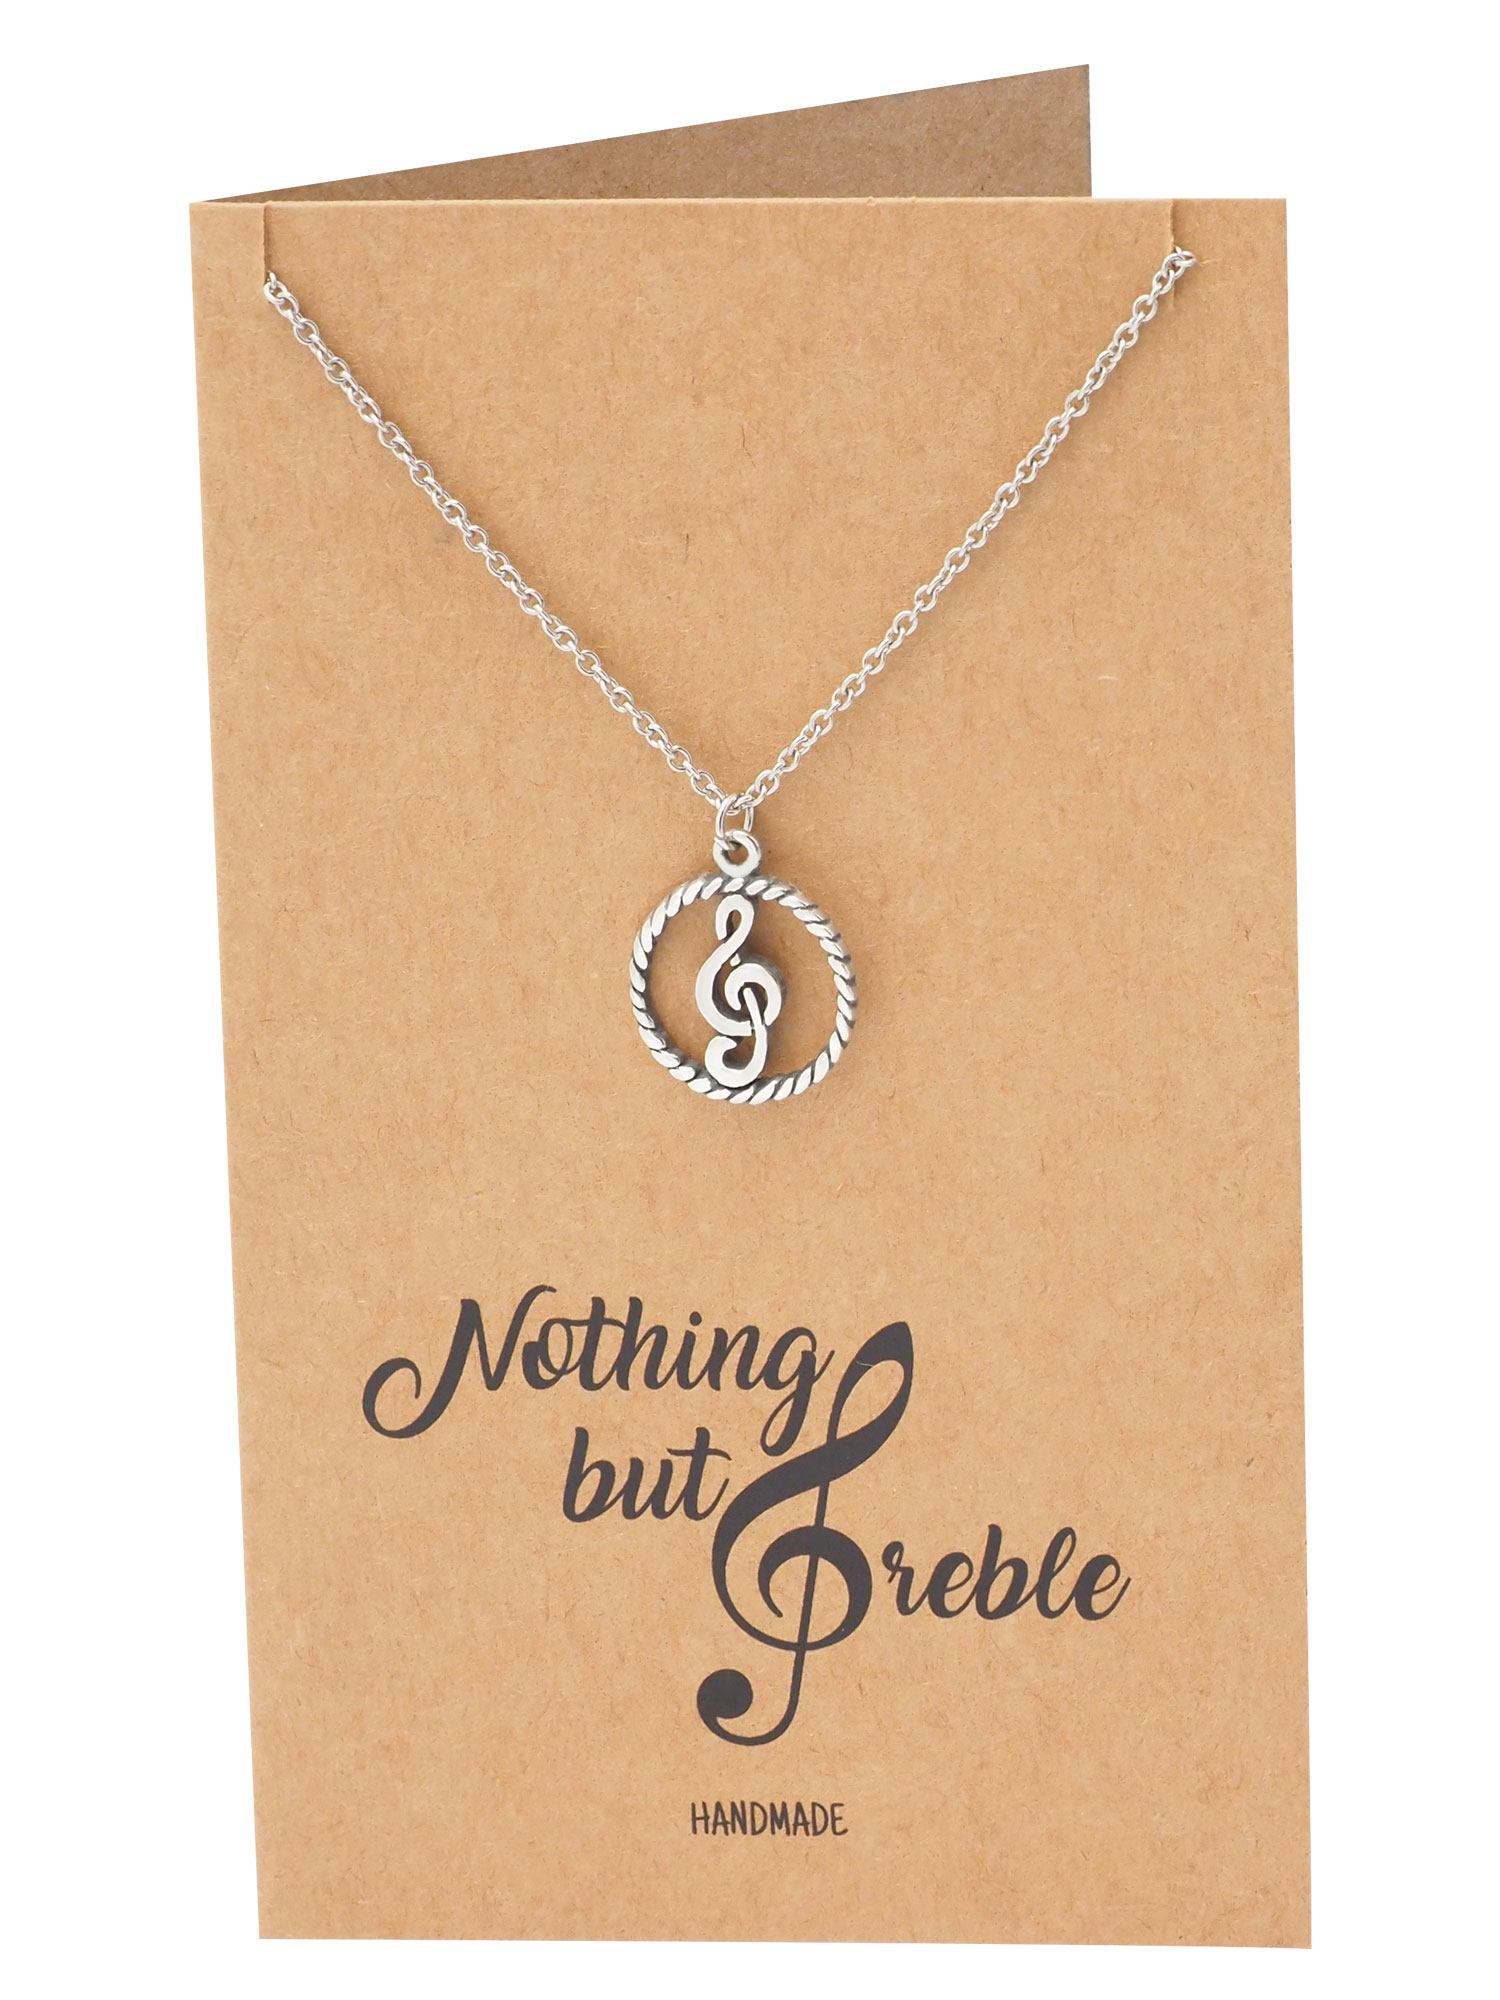 Treble Cleft Jewelry Gifts for Teachers Gifts for Music Lovers Music Teach Gift Music Gift Sterling Silver Treble Cleft Necklace